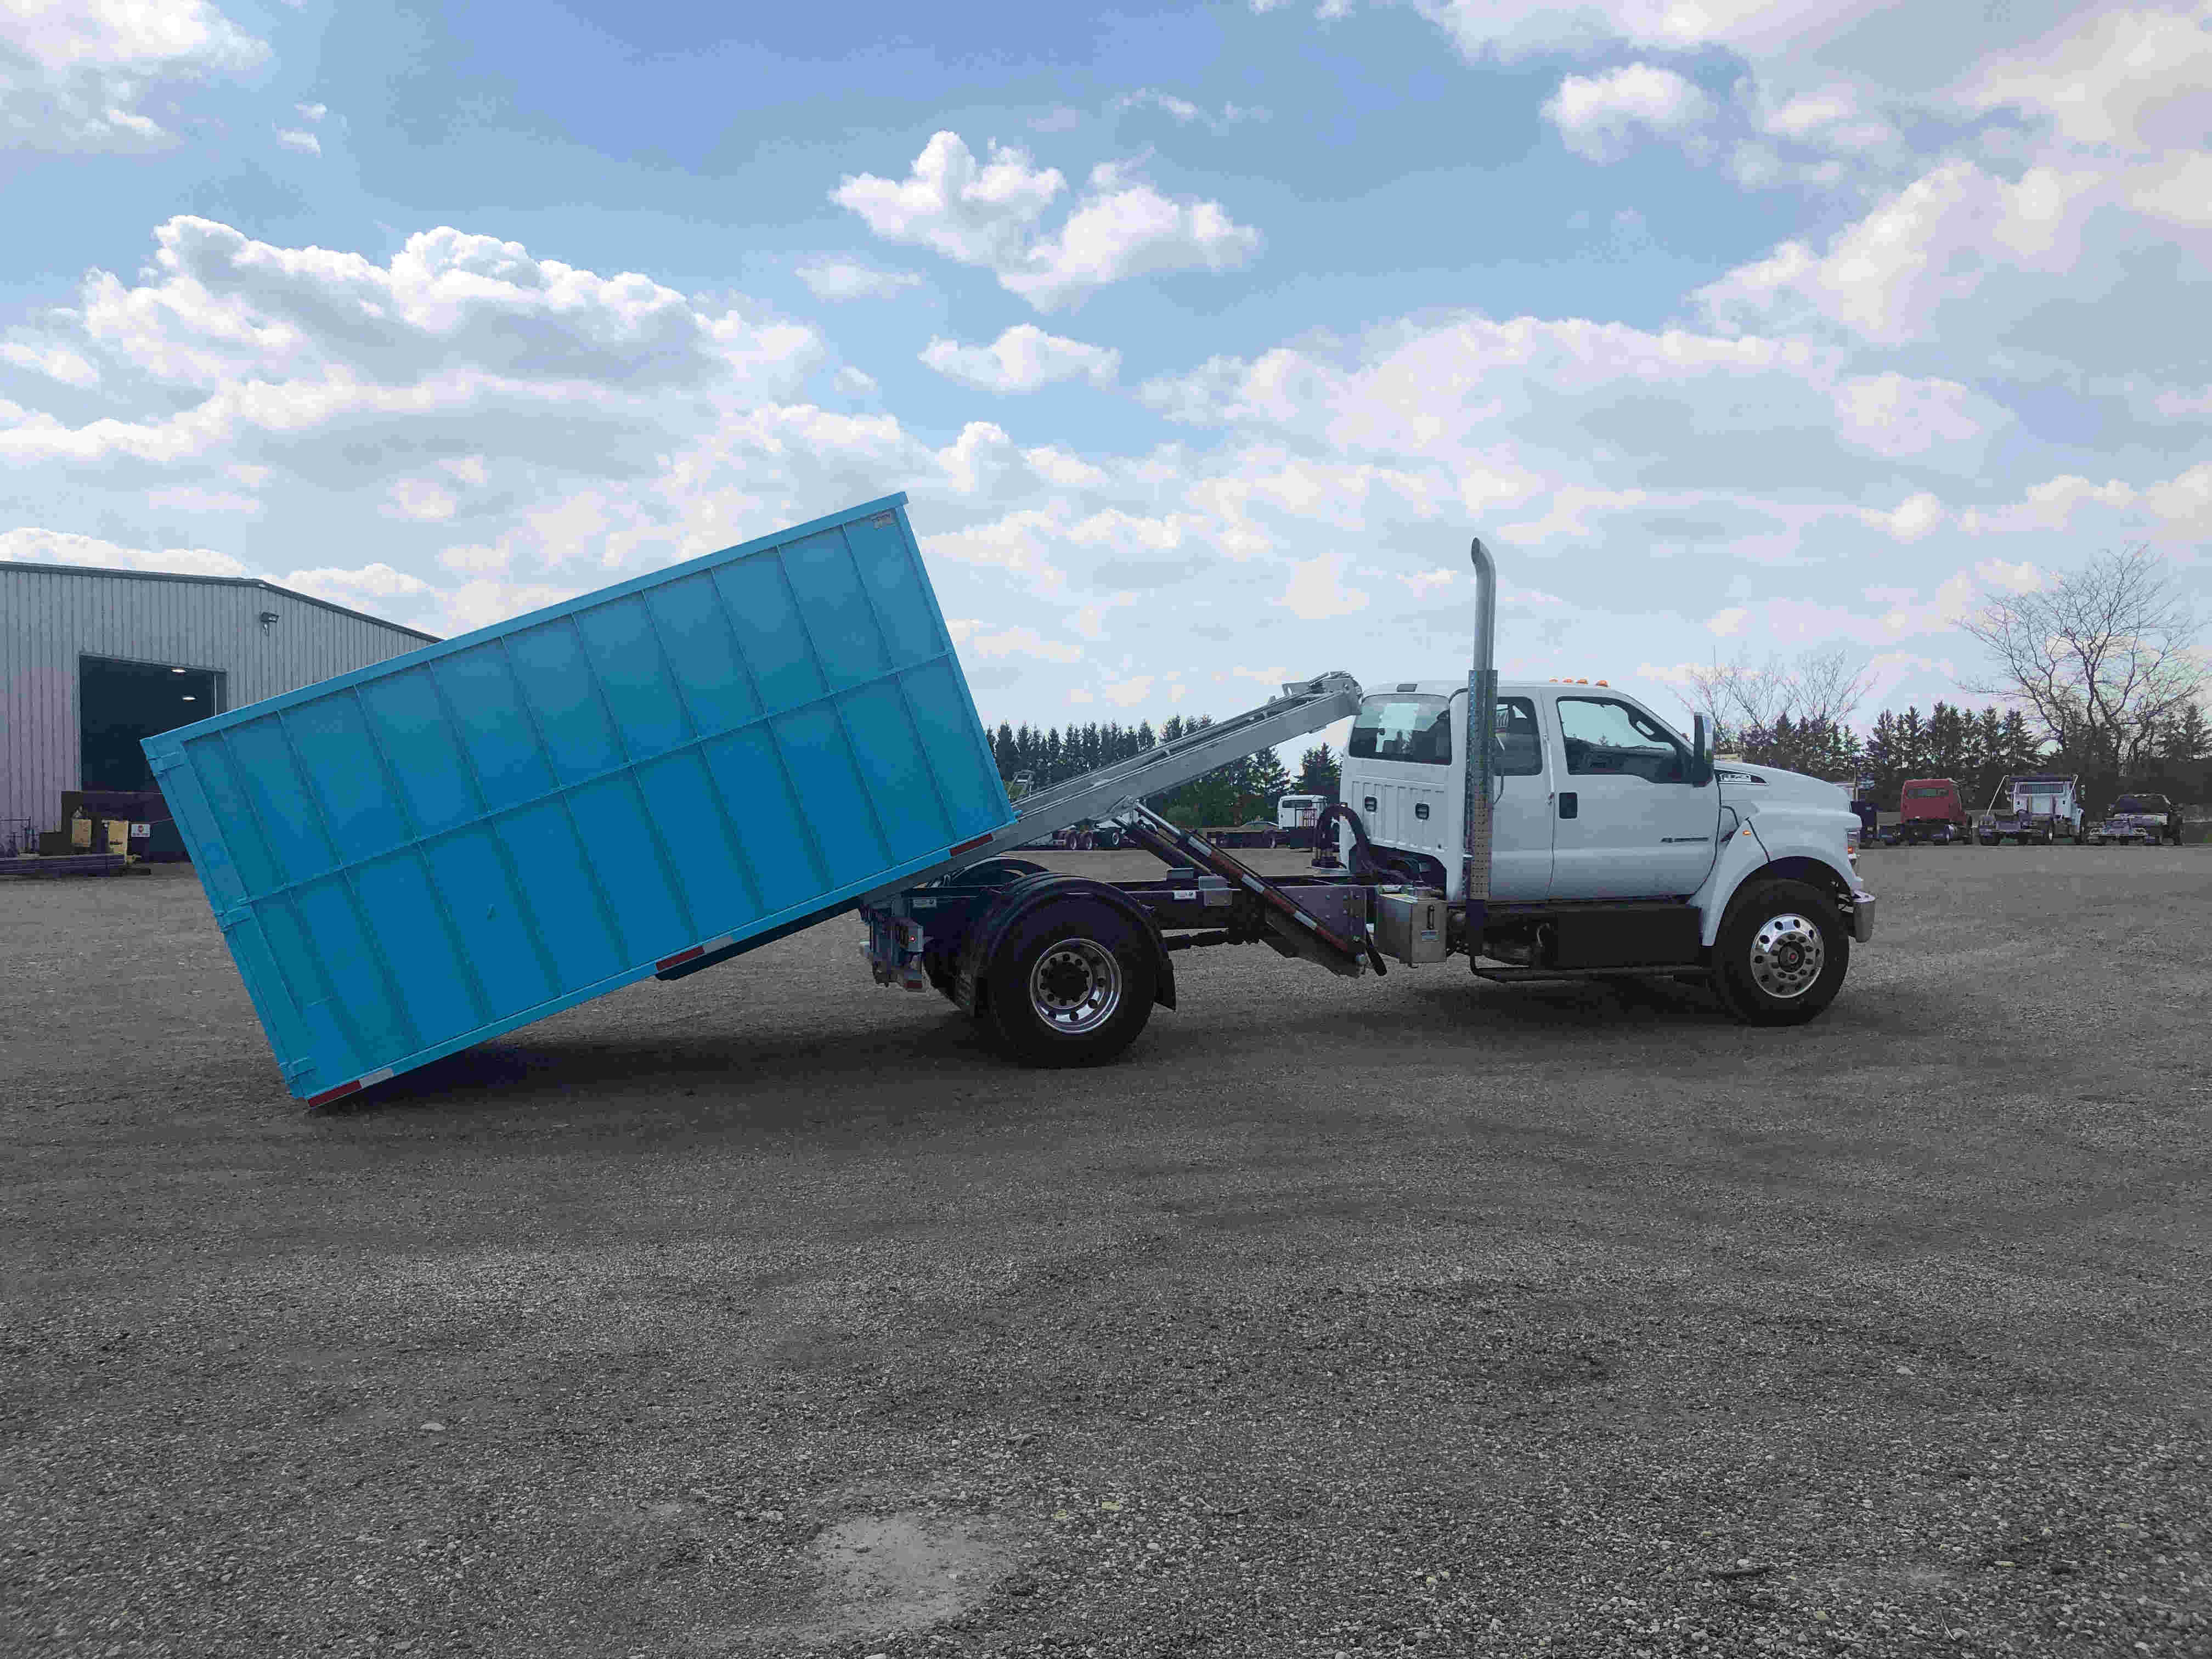 2021 Ford F750 12 On Trux System White (22)